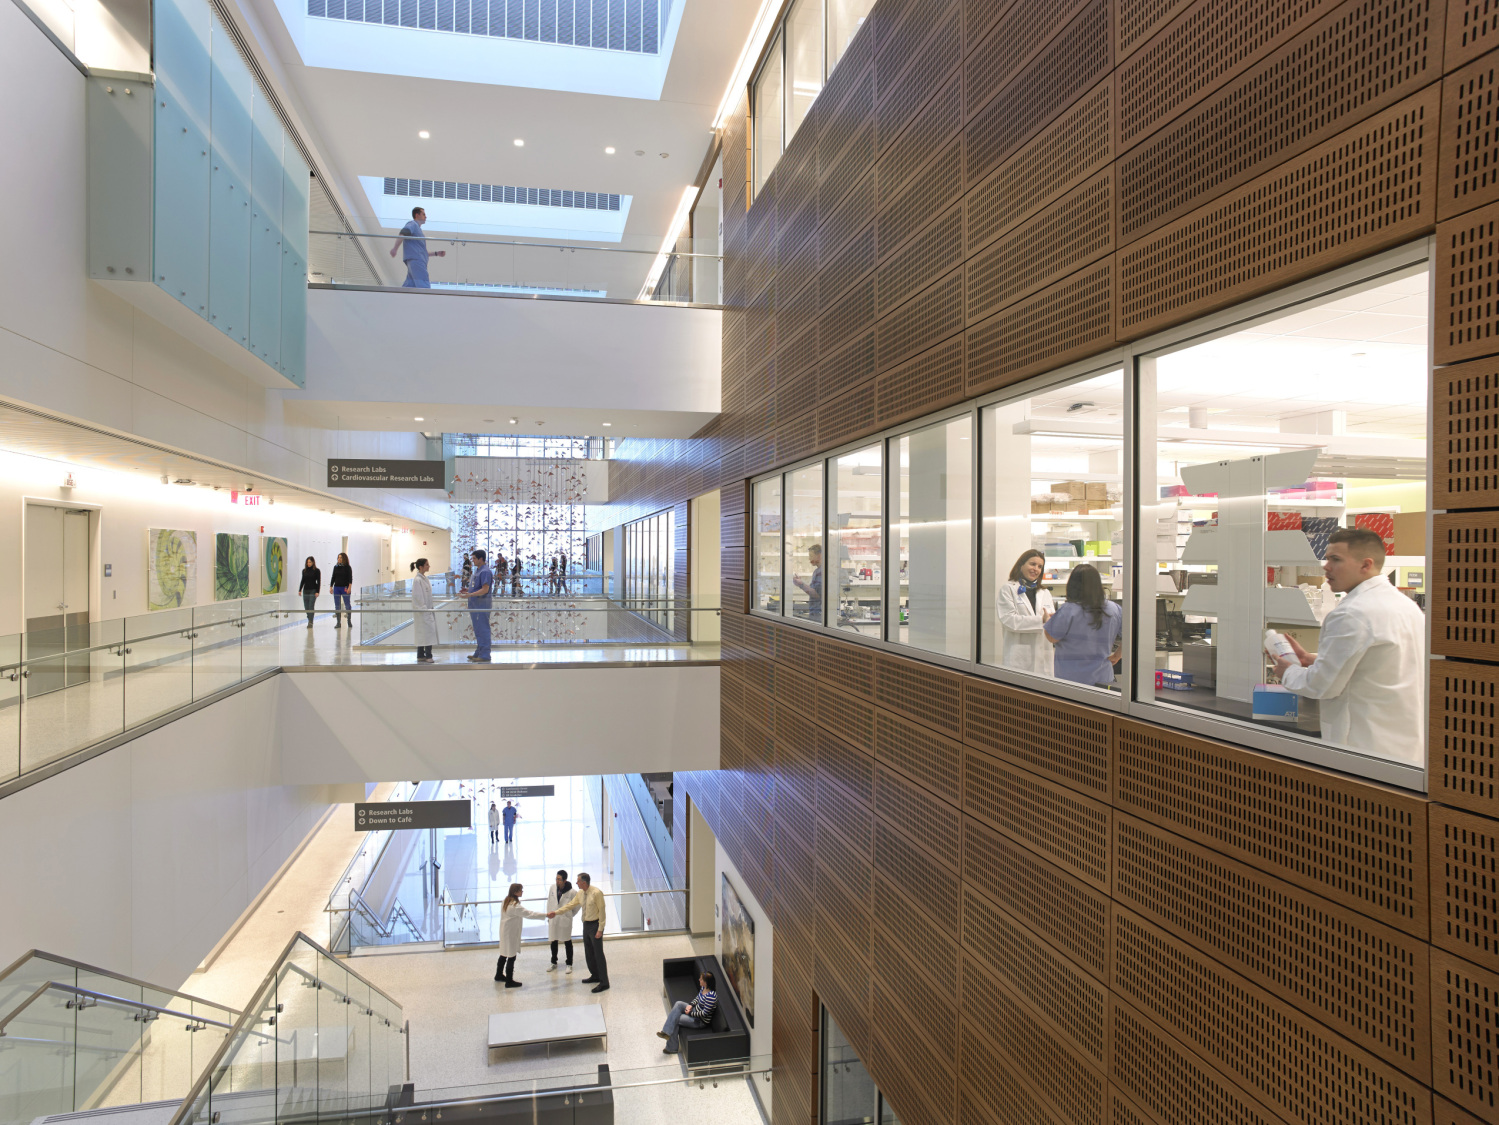 Gates vascular institute a new model for medical - Interior design schools buffalo ny ...